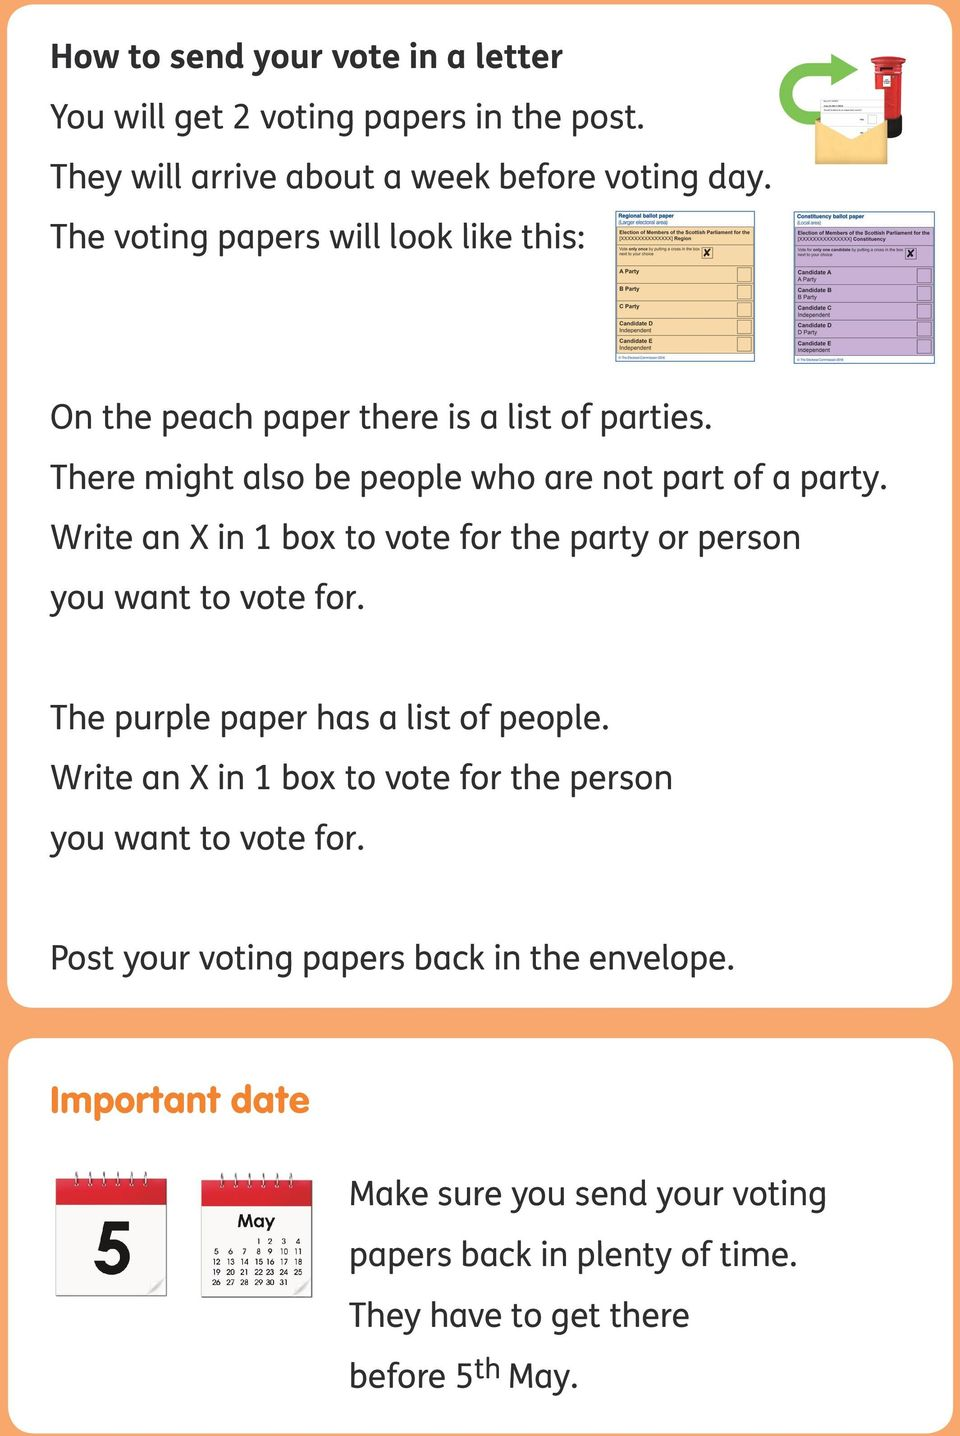 Write an X in 1 box to vote for the party or person you want to vote for. The purple paper has a list of people.